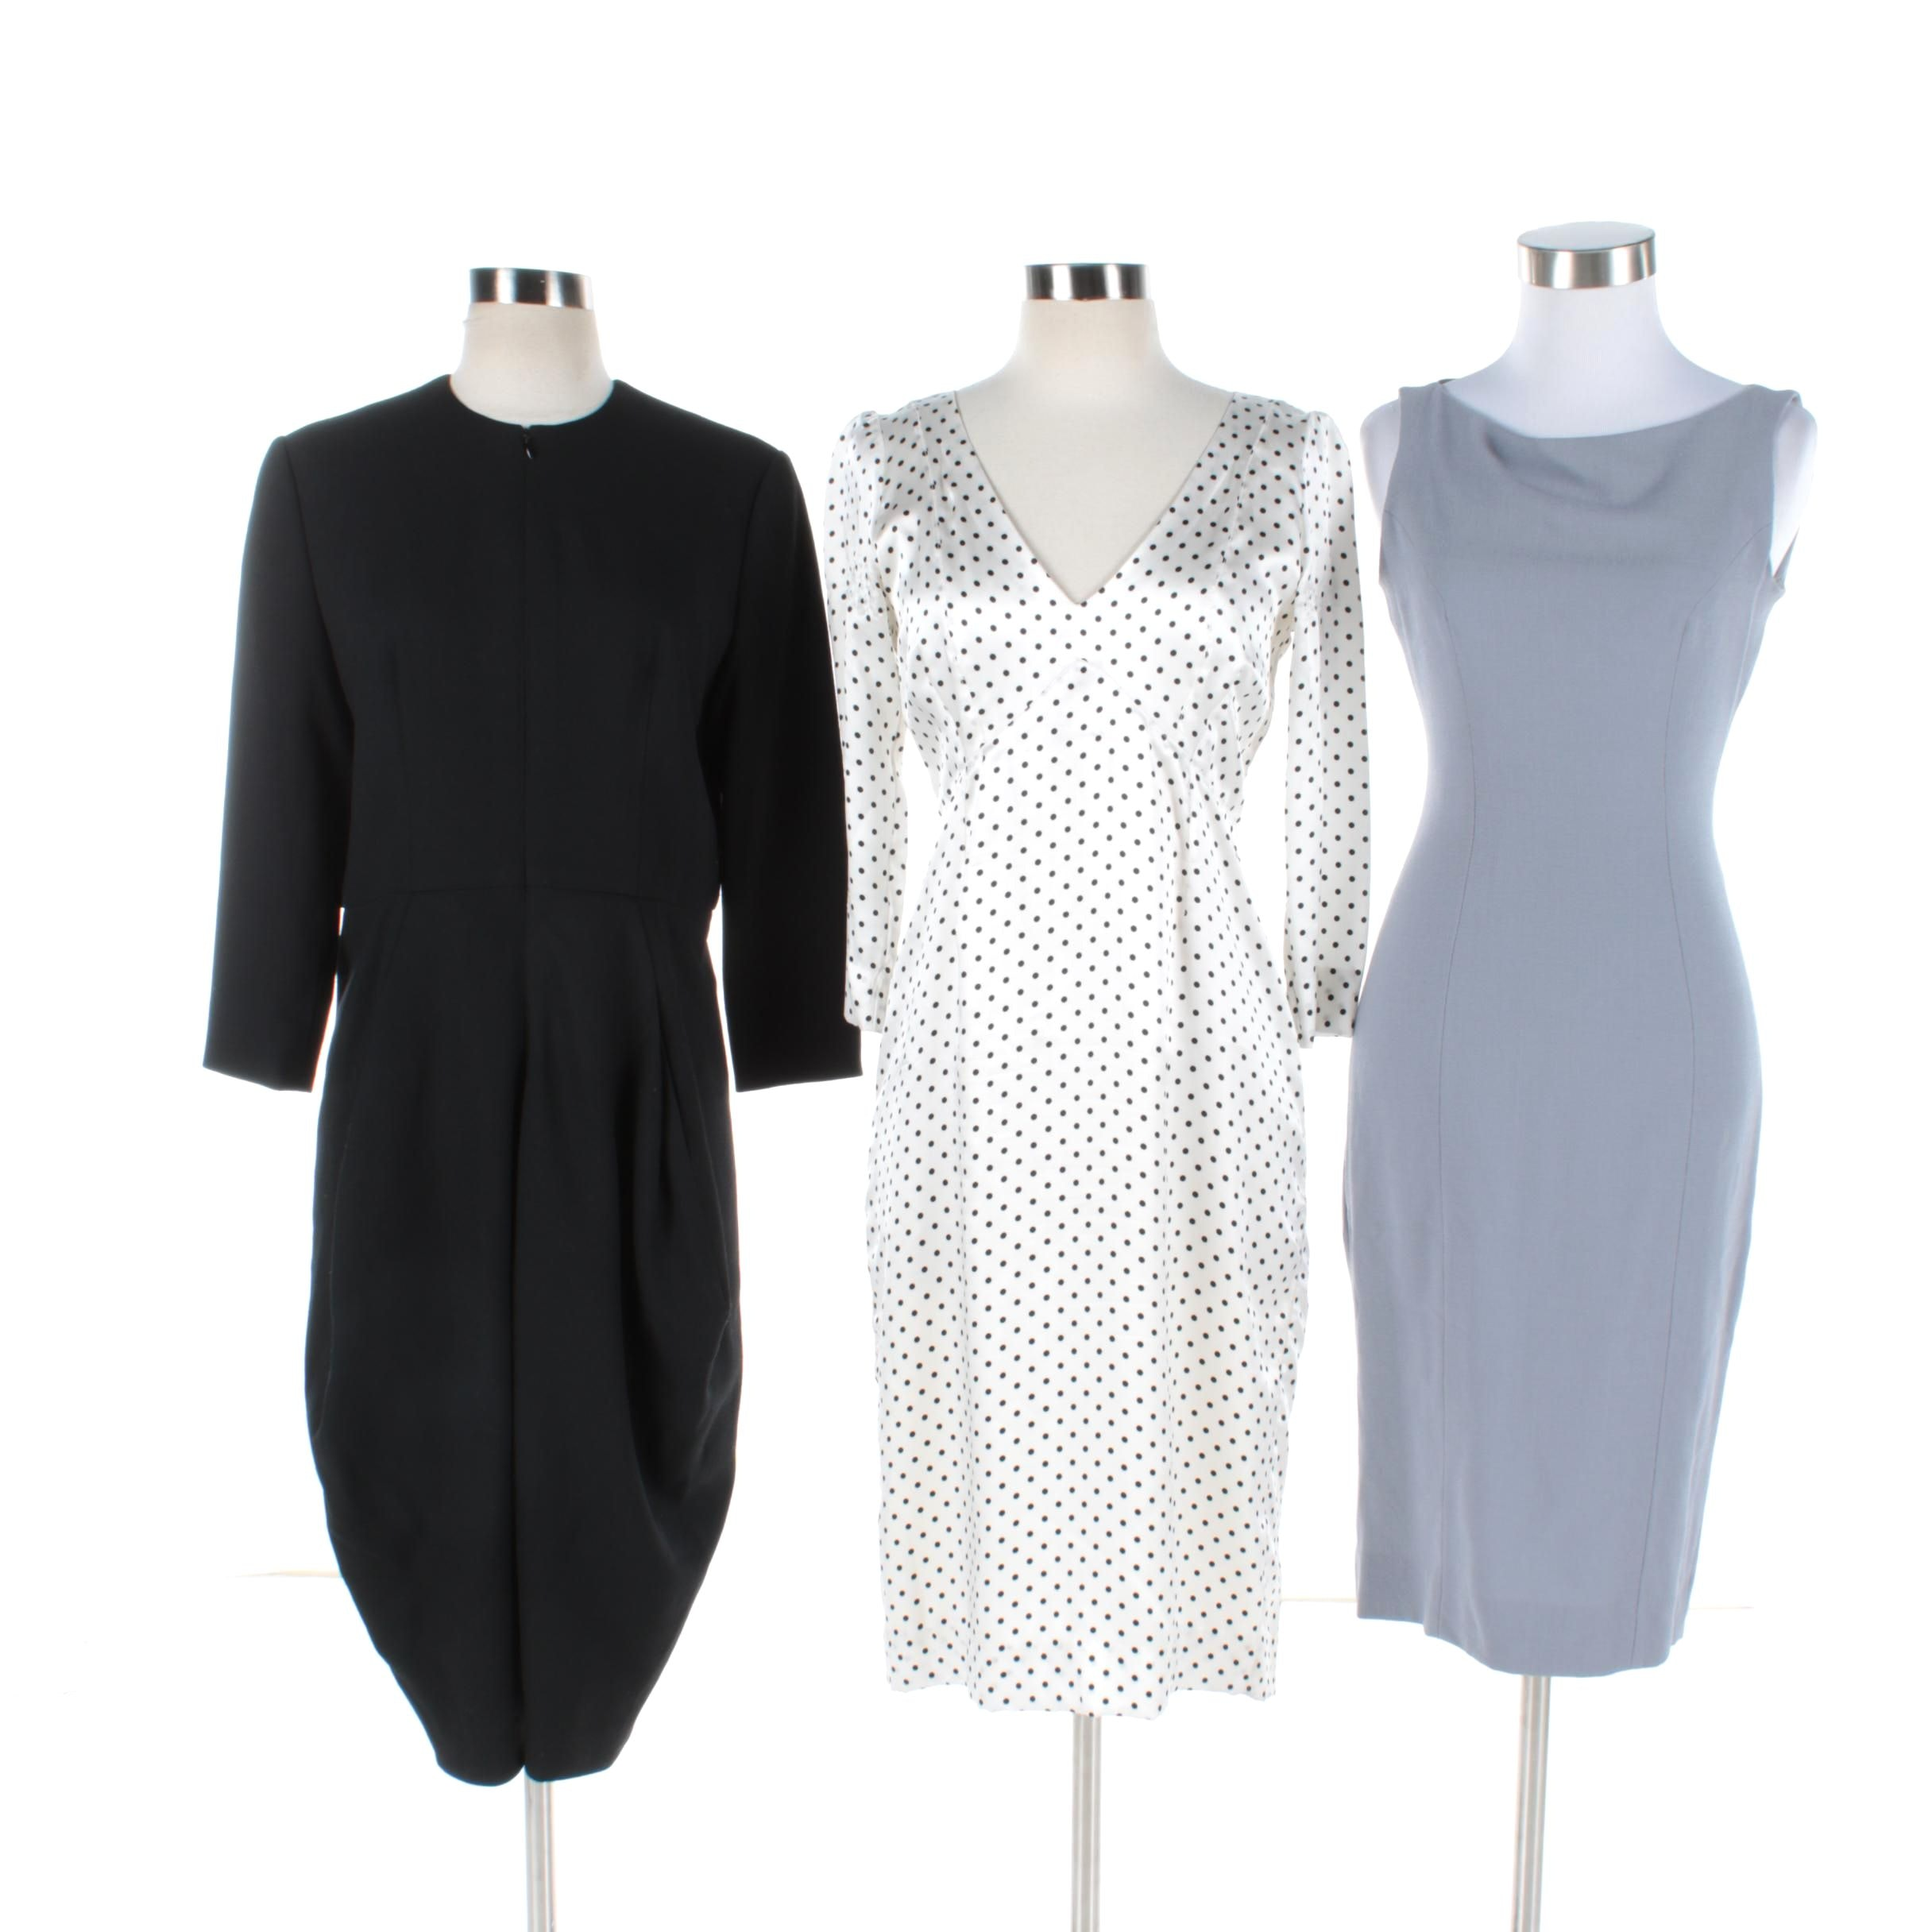 Three Women's Dresses including Susan Becker